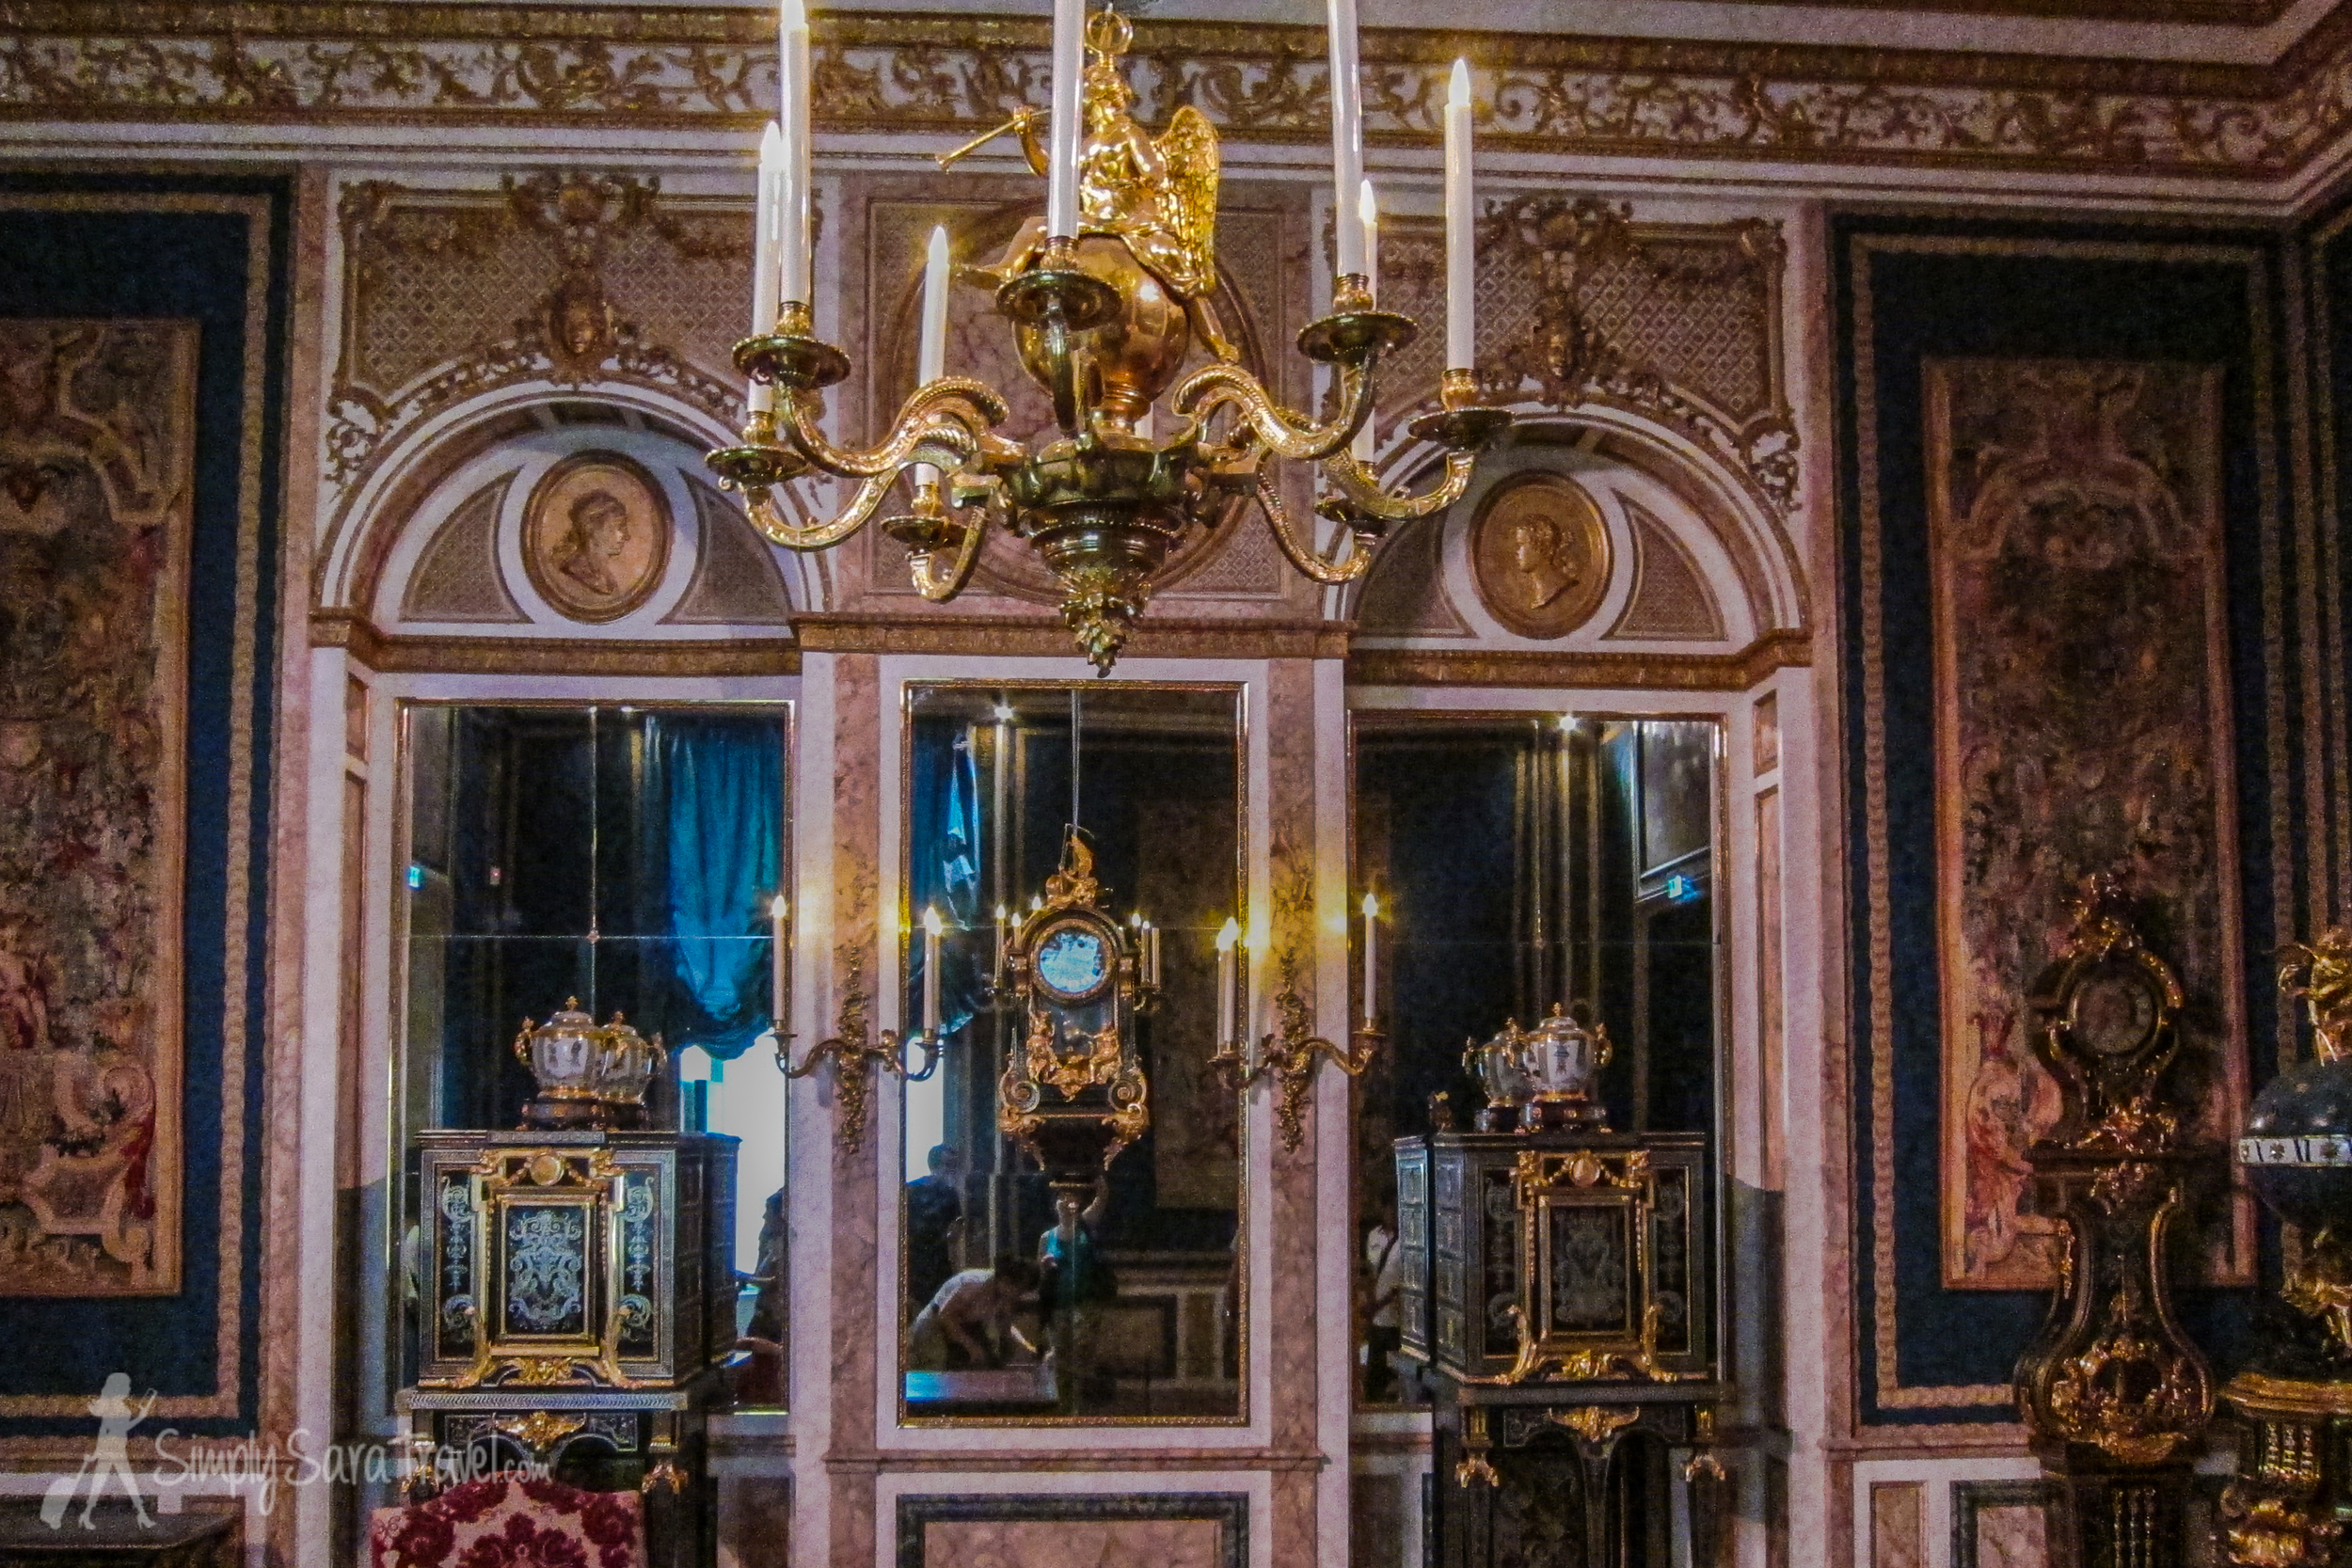 Decorative rooms at the from Louis XIV to Louis XVI collection, Louvre, Paris